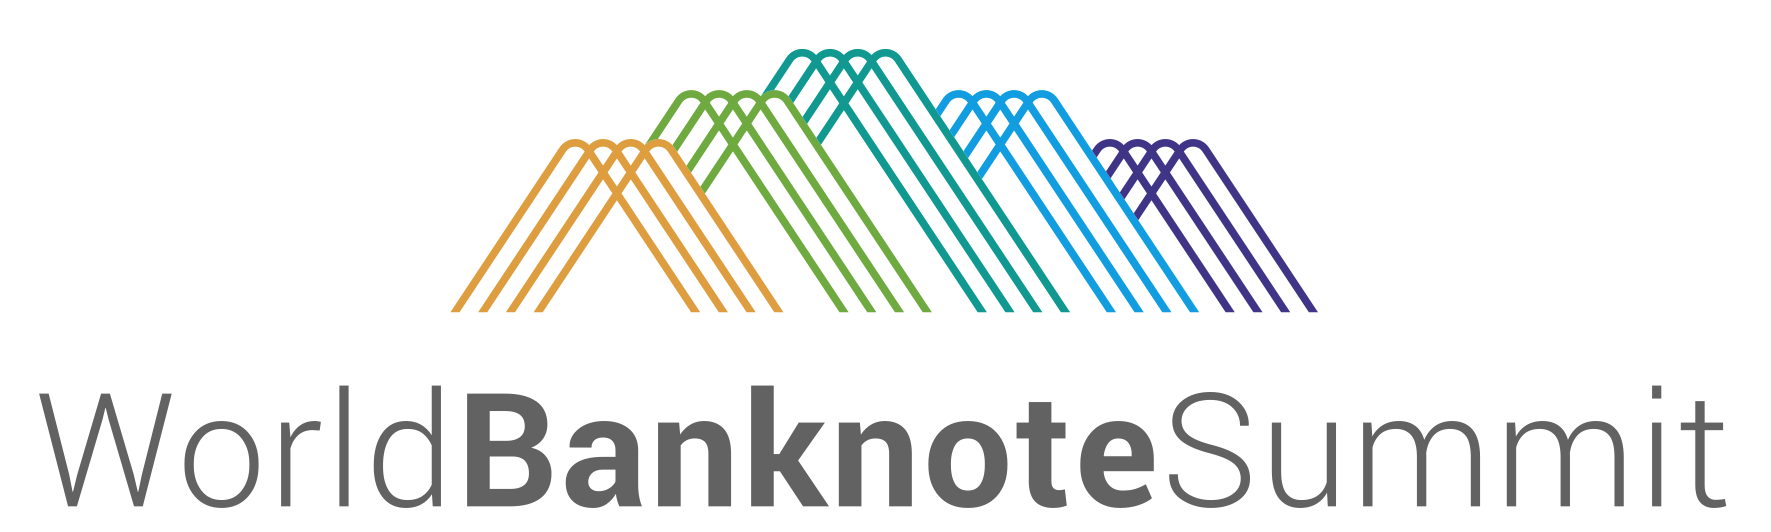 World Banknote Summit – 24-26 сентября 2018, Франкфурт, Германия